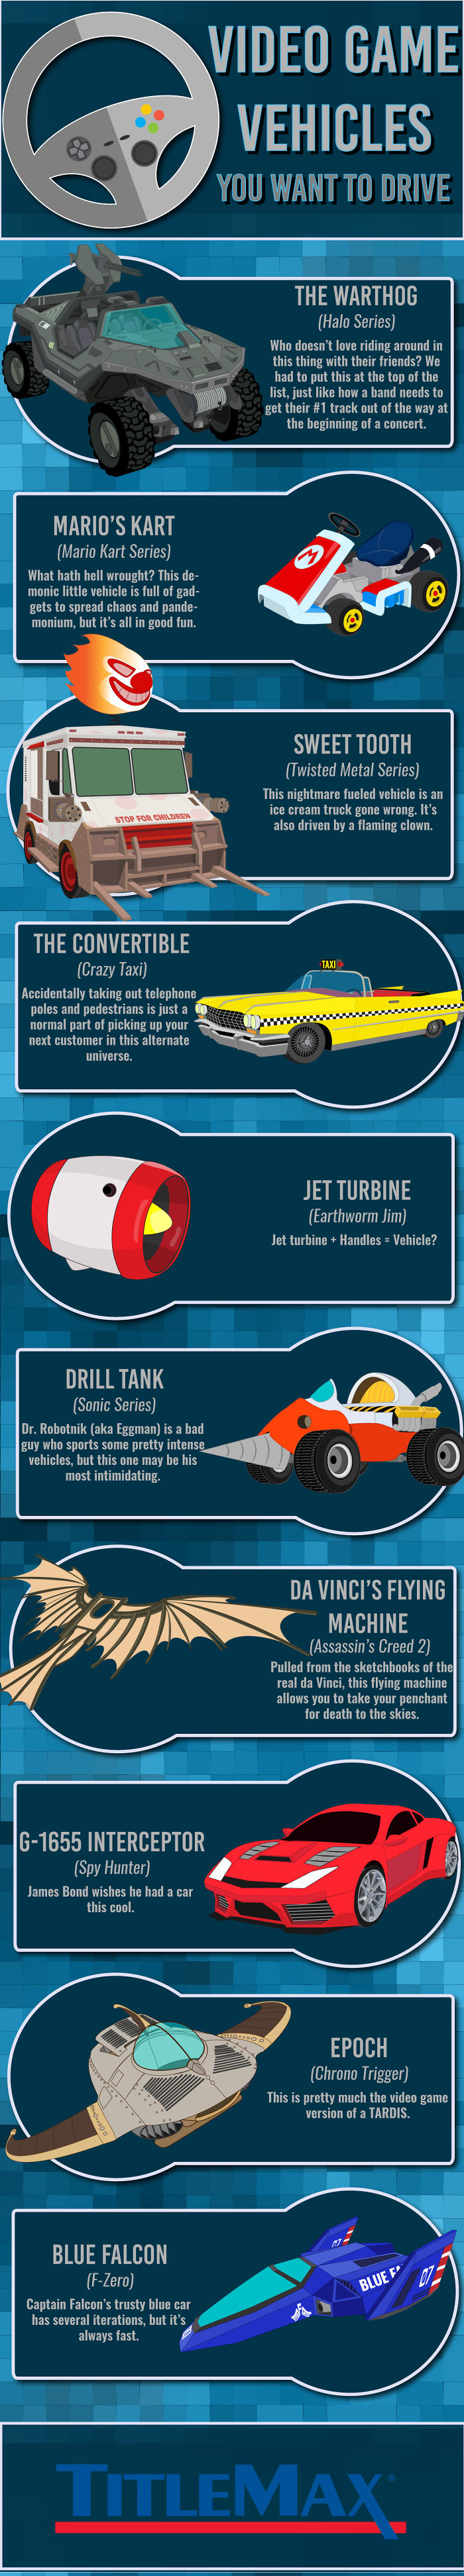 These Are Some Awesome Video Game Vehicles I Want To Drive